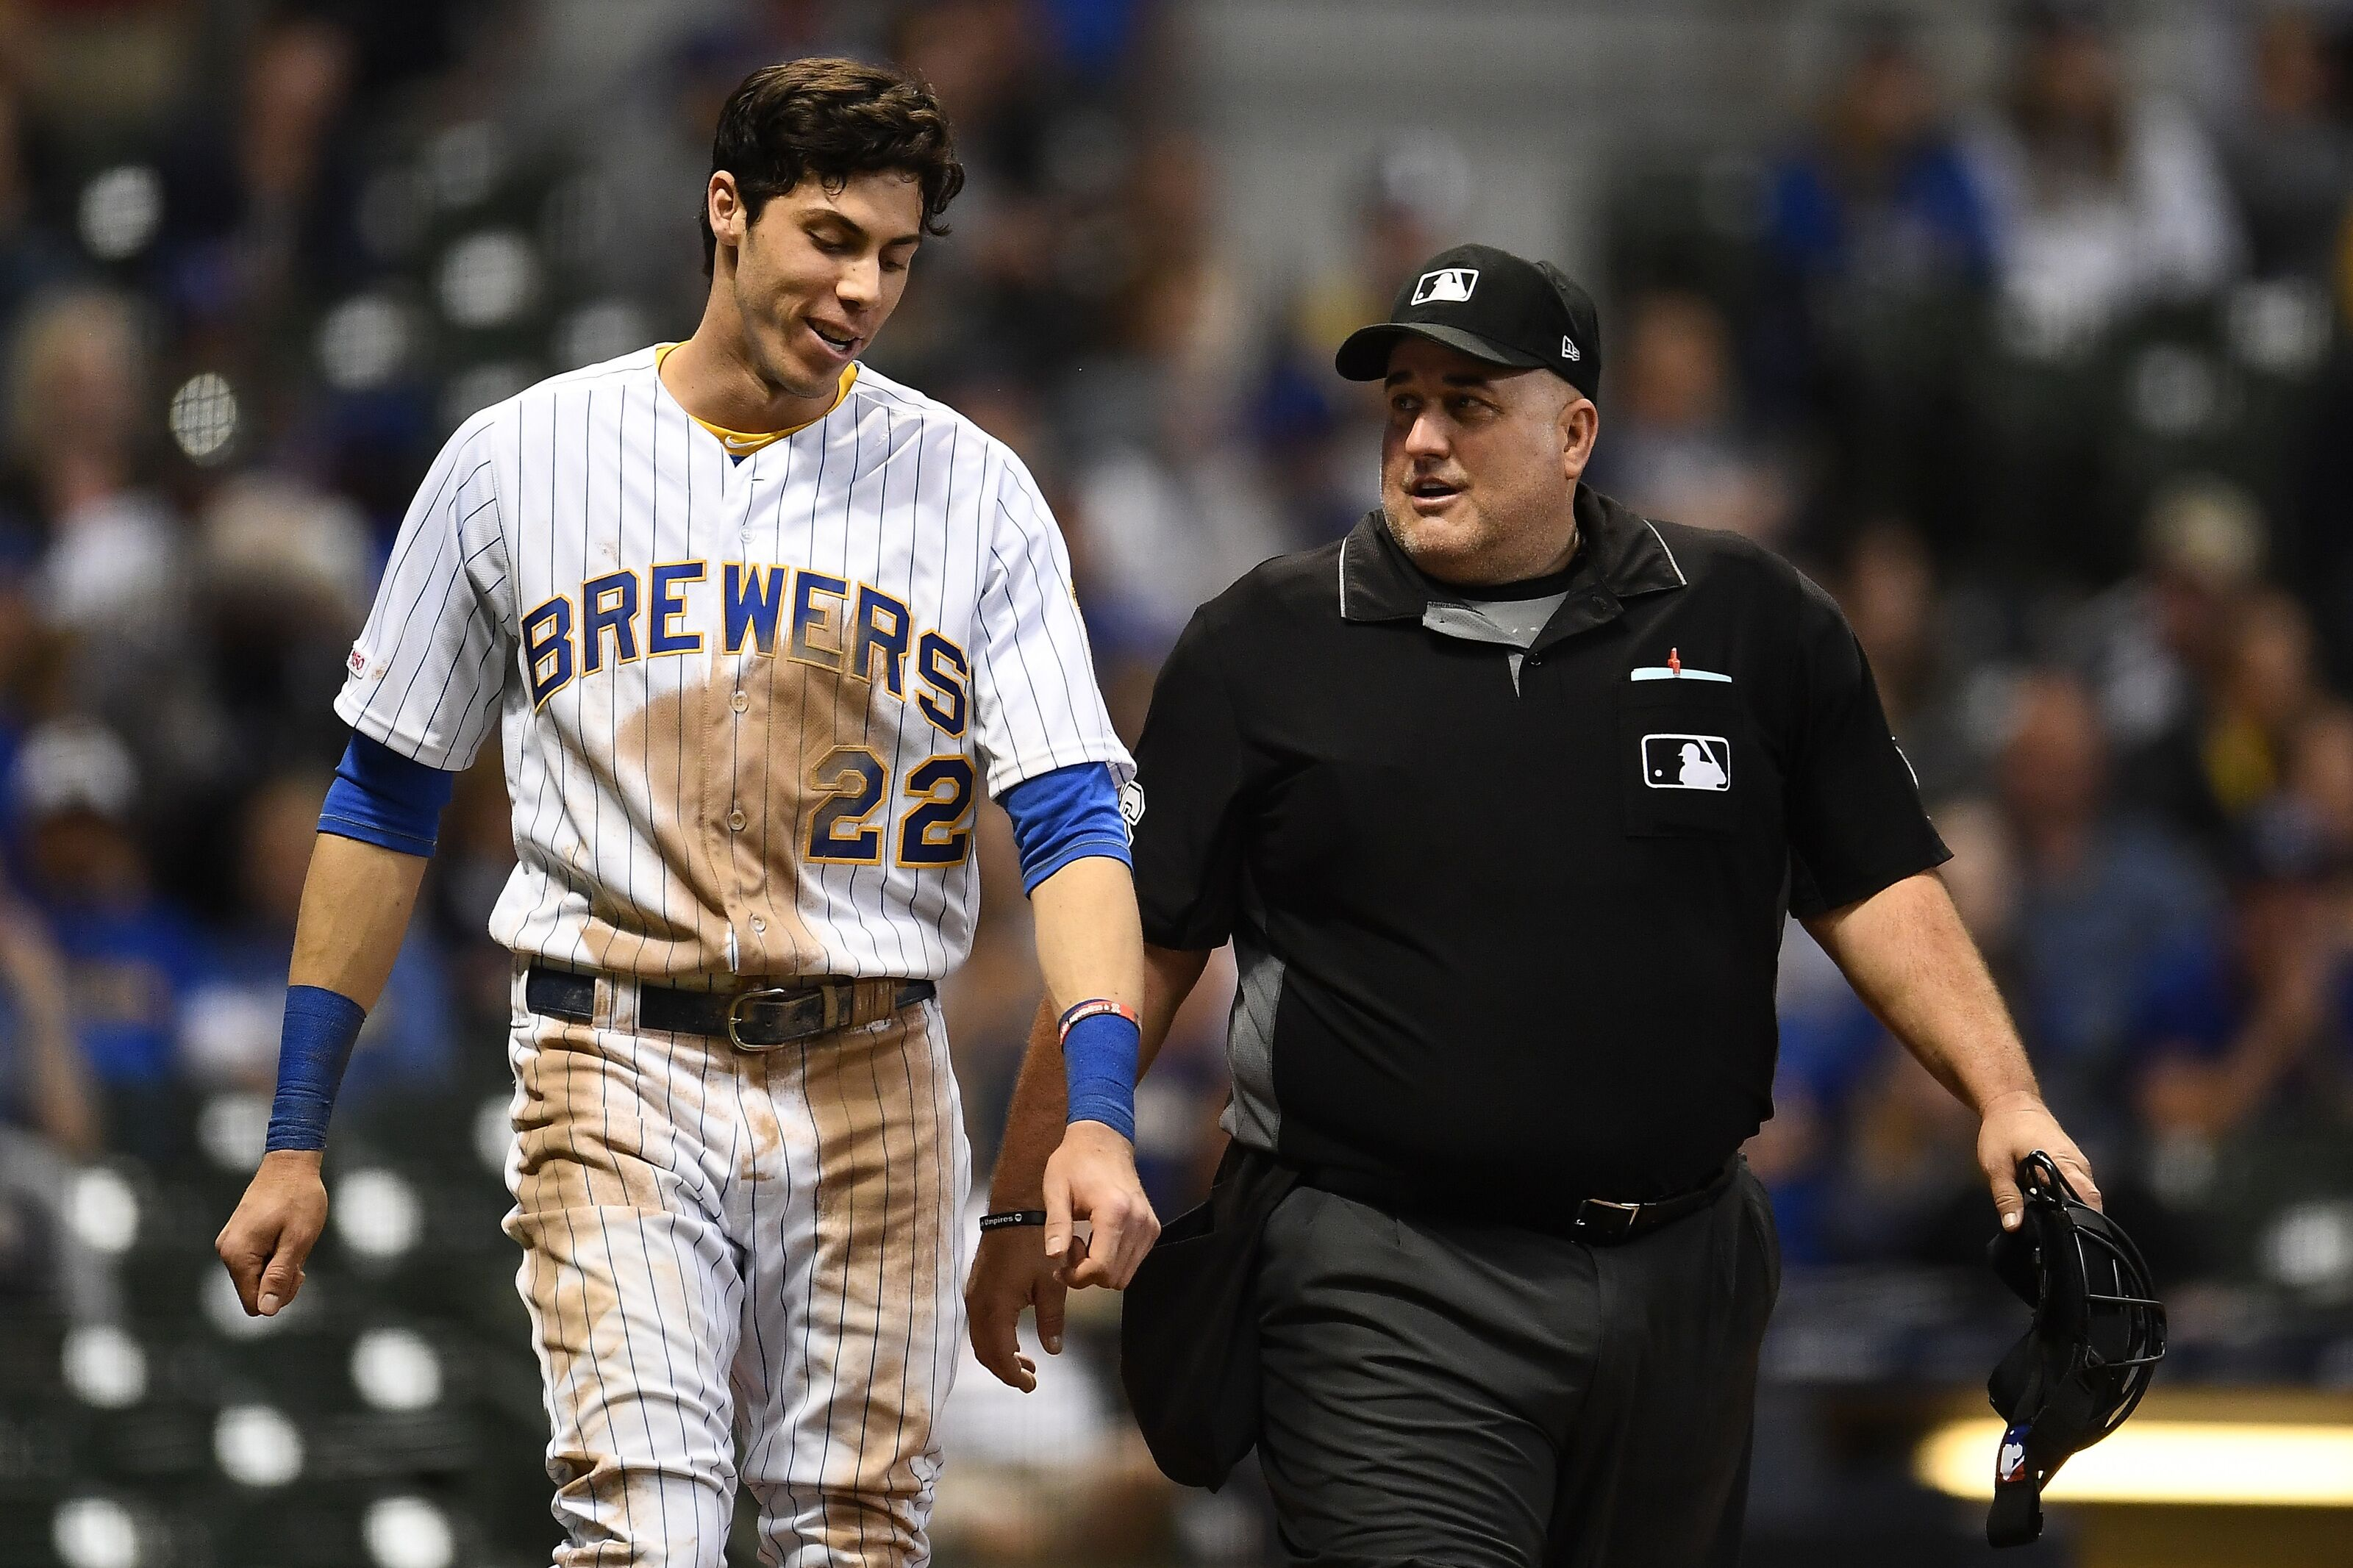 Brewers: Christian Yelich Claps Back at Sign-Stealing Accusations